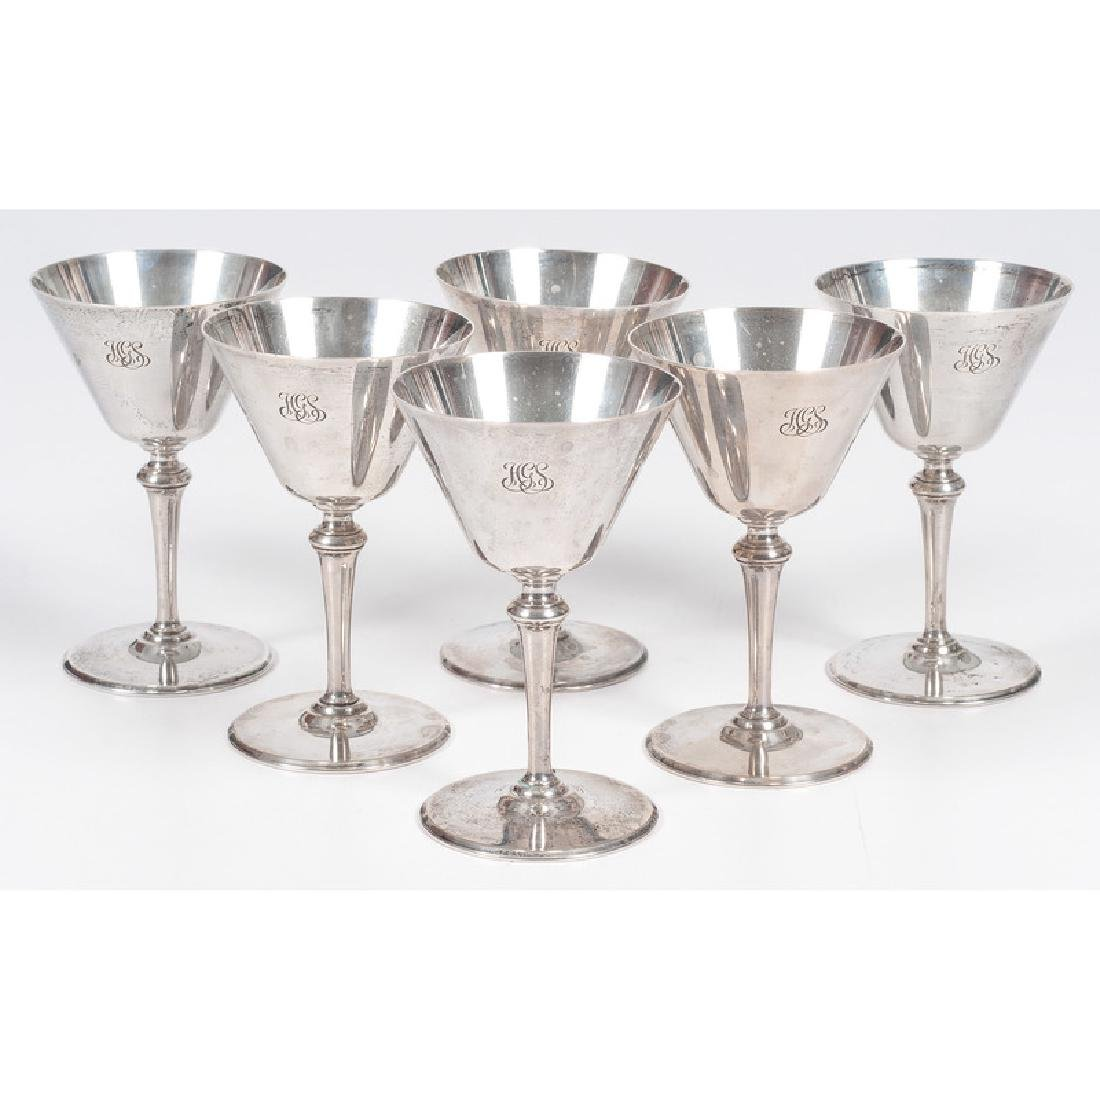 Tiffany & Co. Sterling Cocktail Glasses